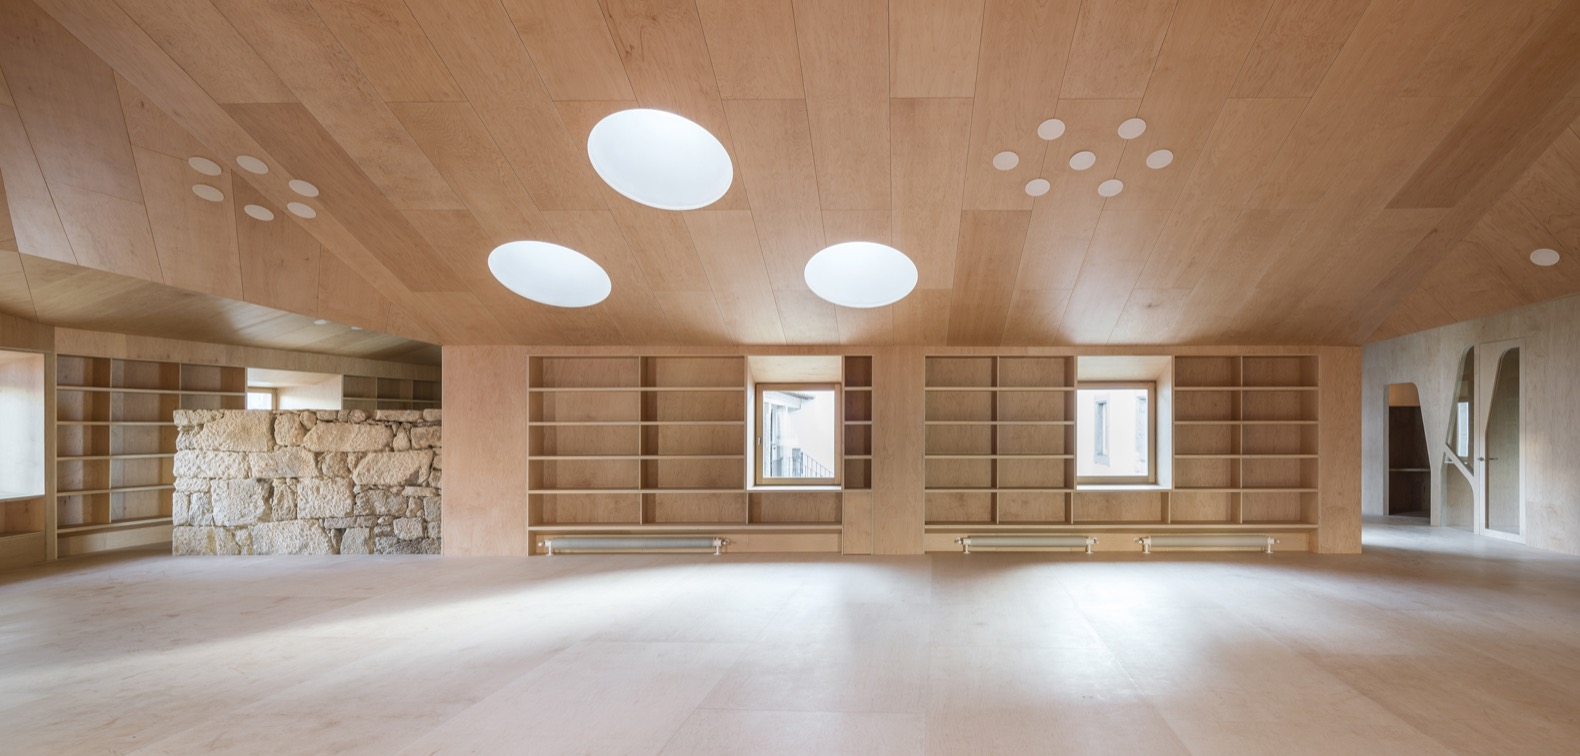 A 17th Century Spanish Hospital Gets Transformed Into Cozy Library